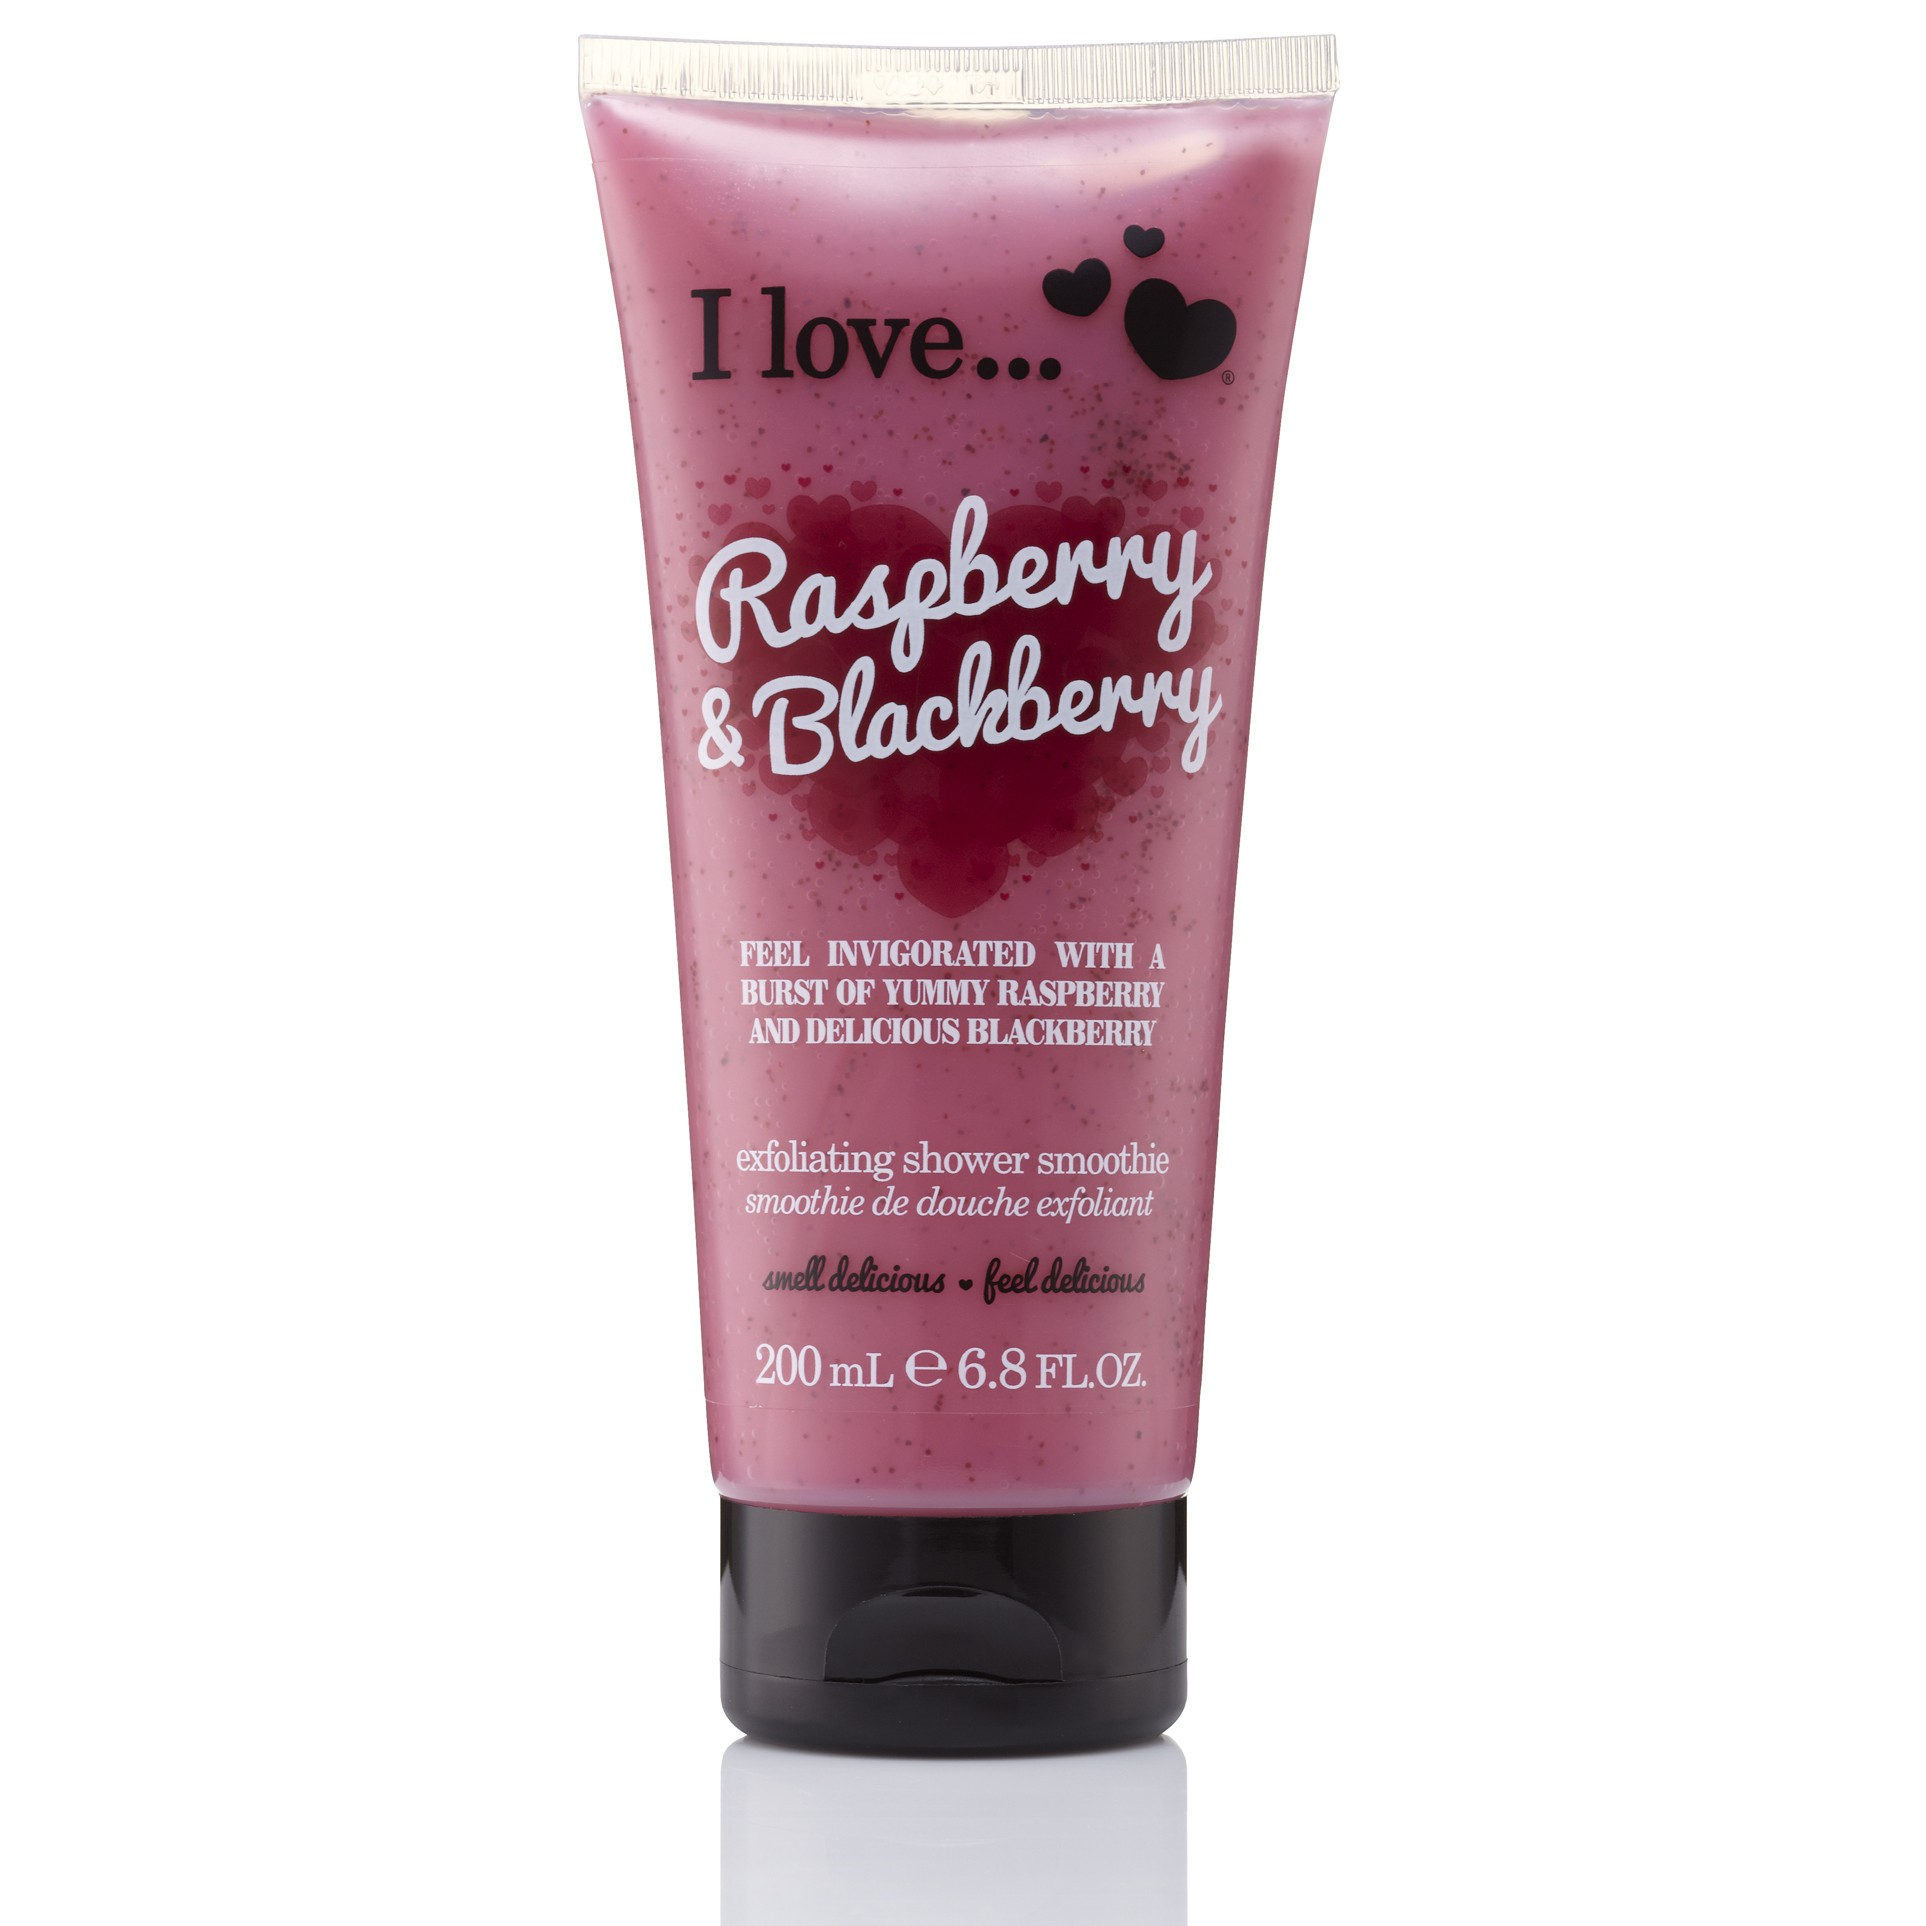 a9eeb4606 I Love Exfoliating Shower Smoothie